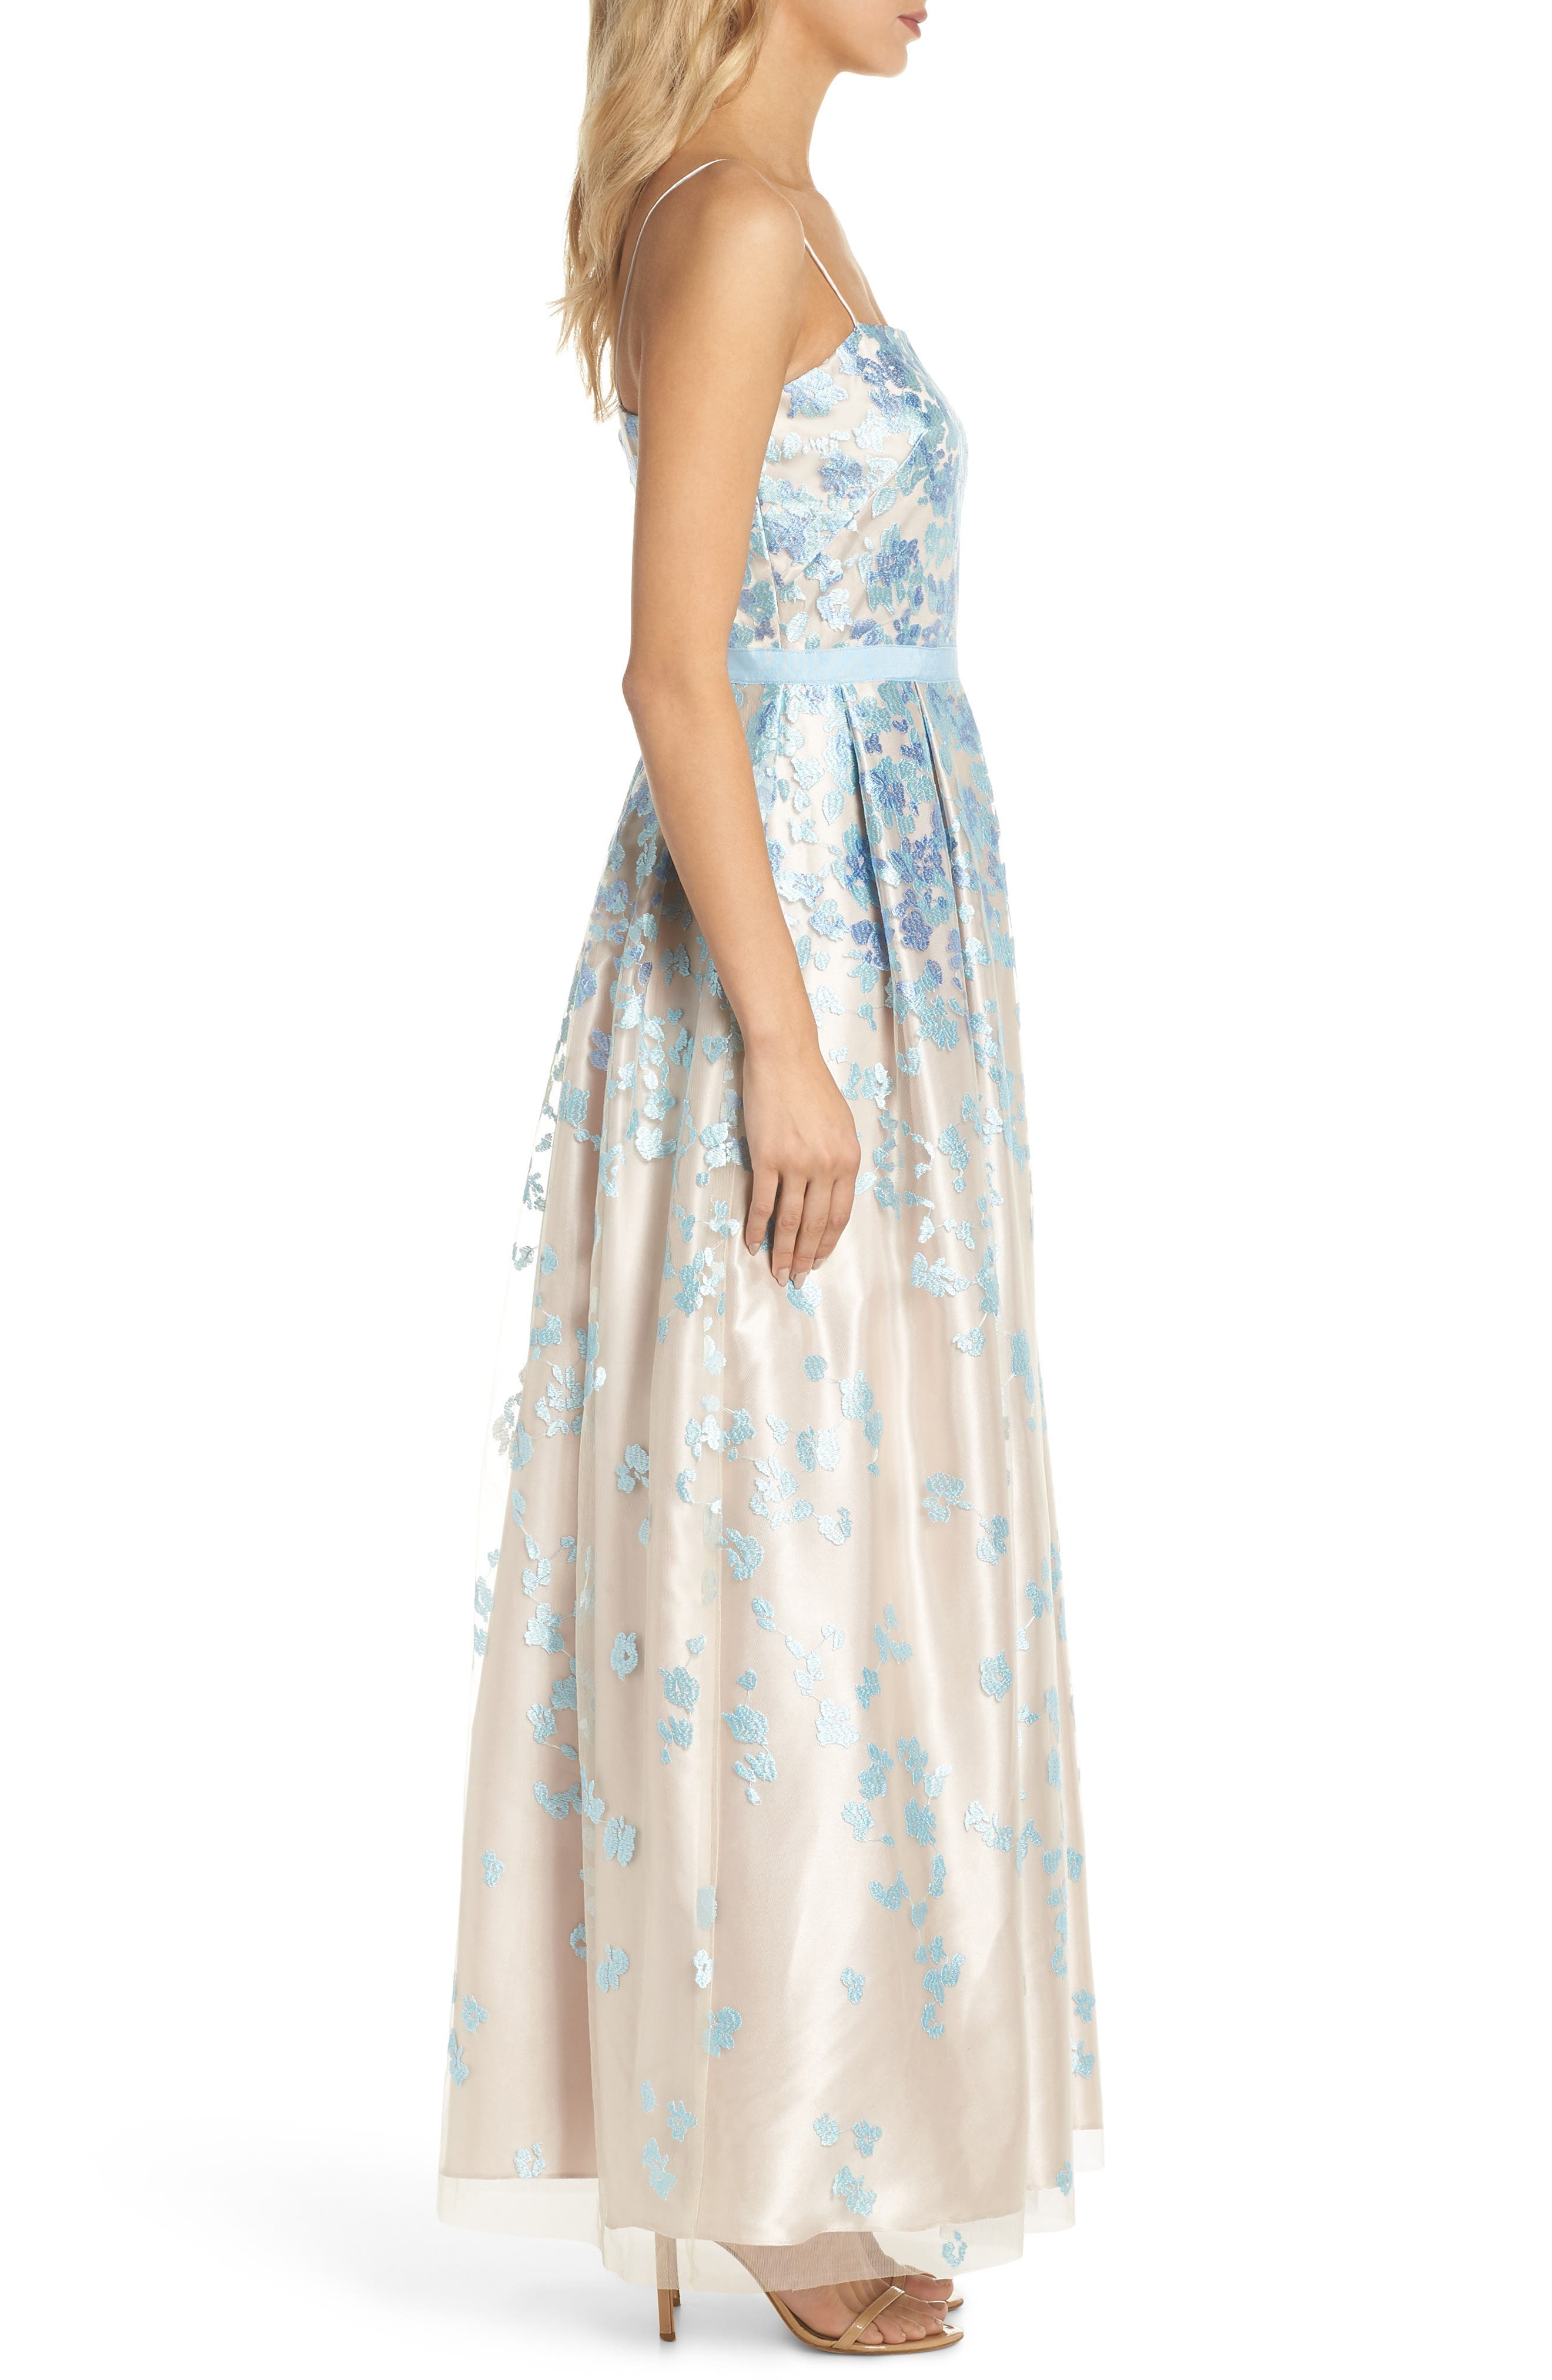 ELIZA J,                             Floral Embroidered Box Pleat Ballgown,                             Alternate thumbnail 4, color,                             450